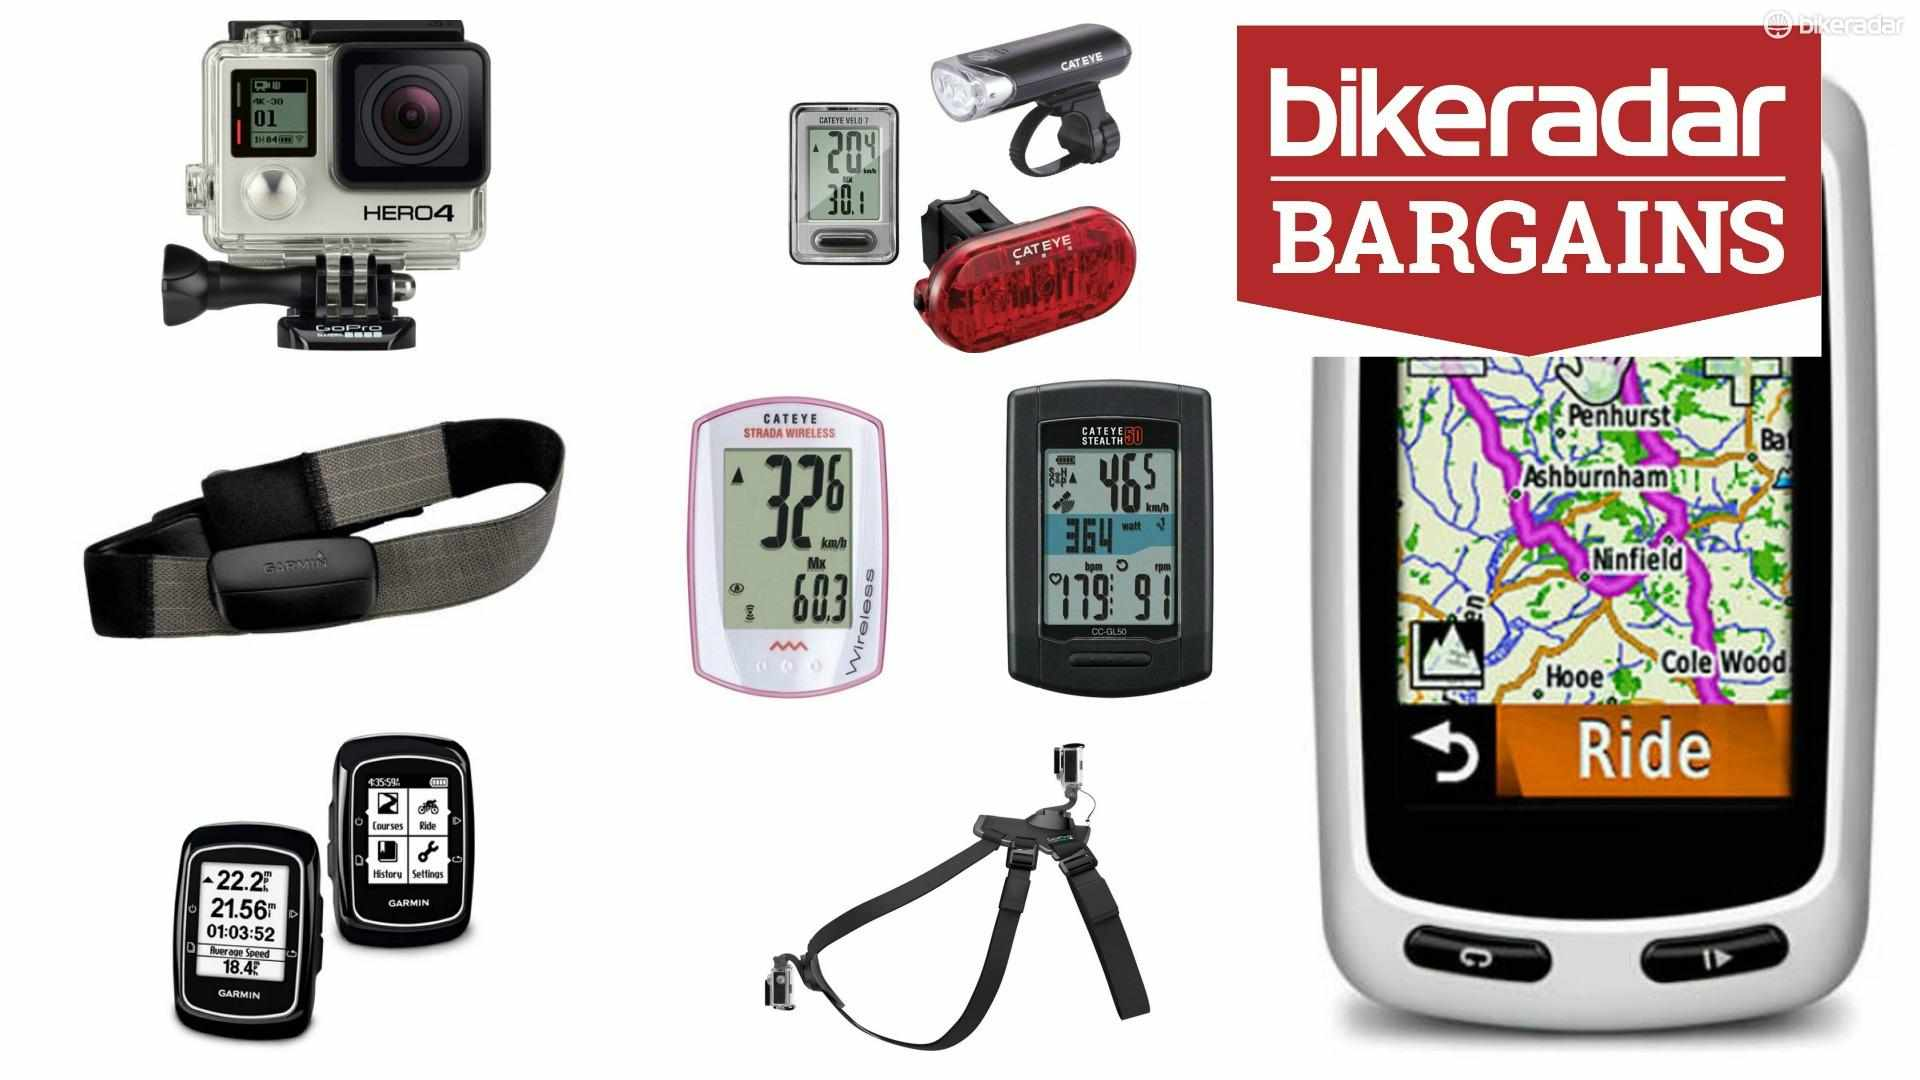 Bargain time, with plenty of computers, GPS units and accessories to lift a gadget-lover's heart. Oh, and a GoPro for good measure